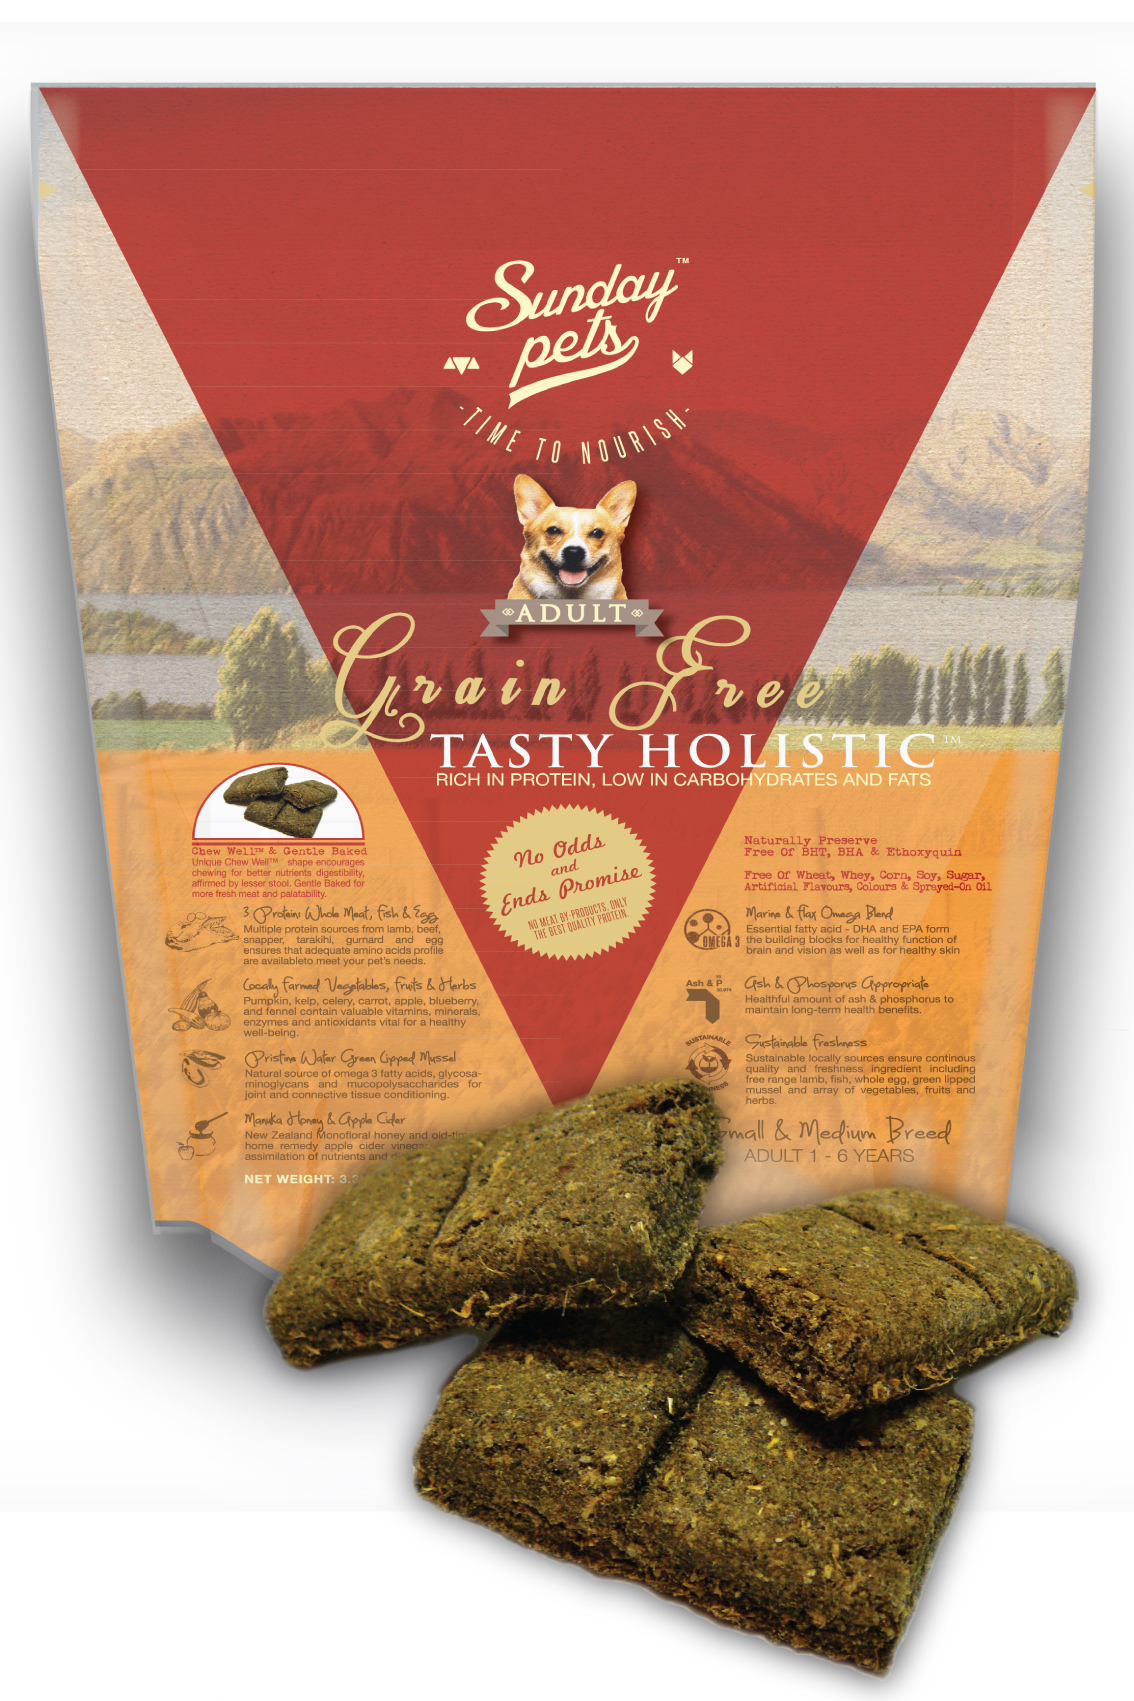 Sunday Pets Tasty Holistic Grain Free Adult